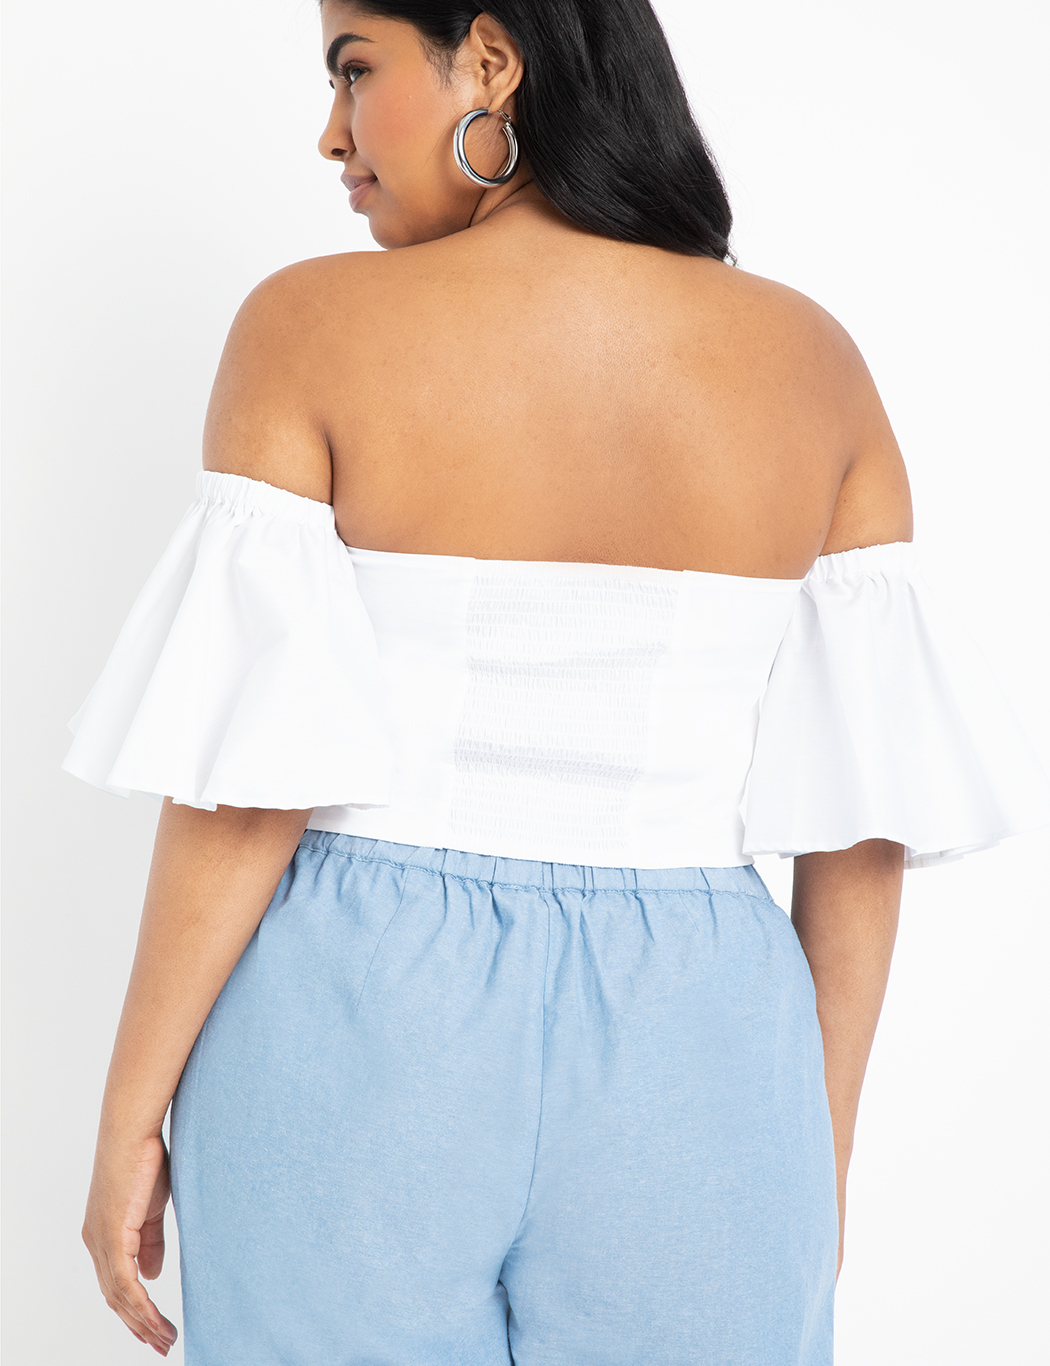 Drama Off the Shoulder Top